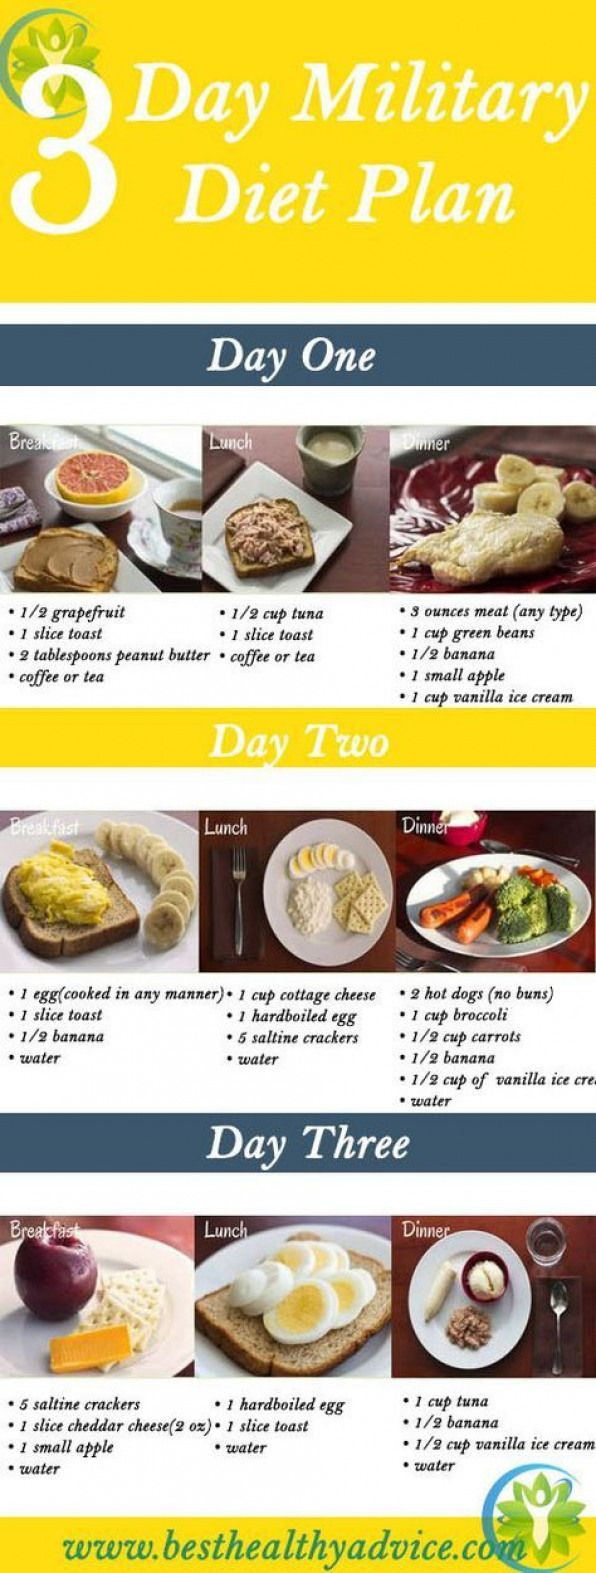 10 Pounds Less in Only 3-Days With This MILITARY DIET Plan | Workout